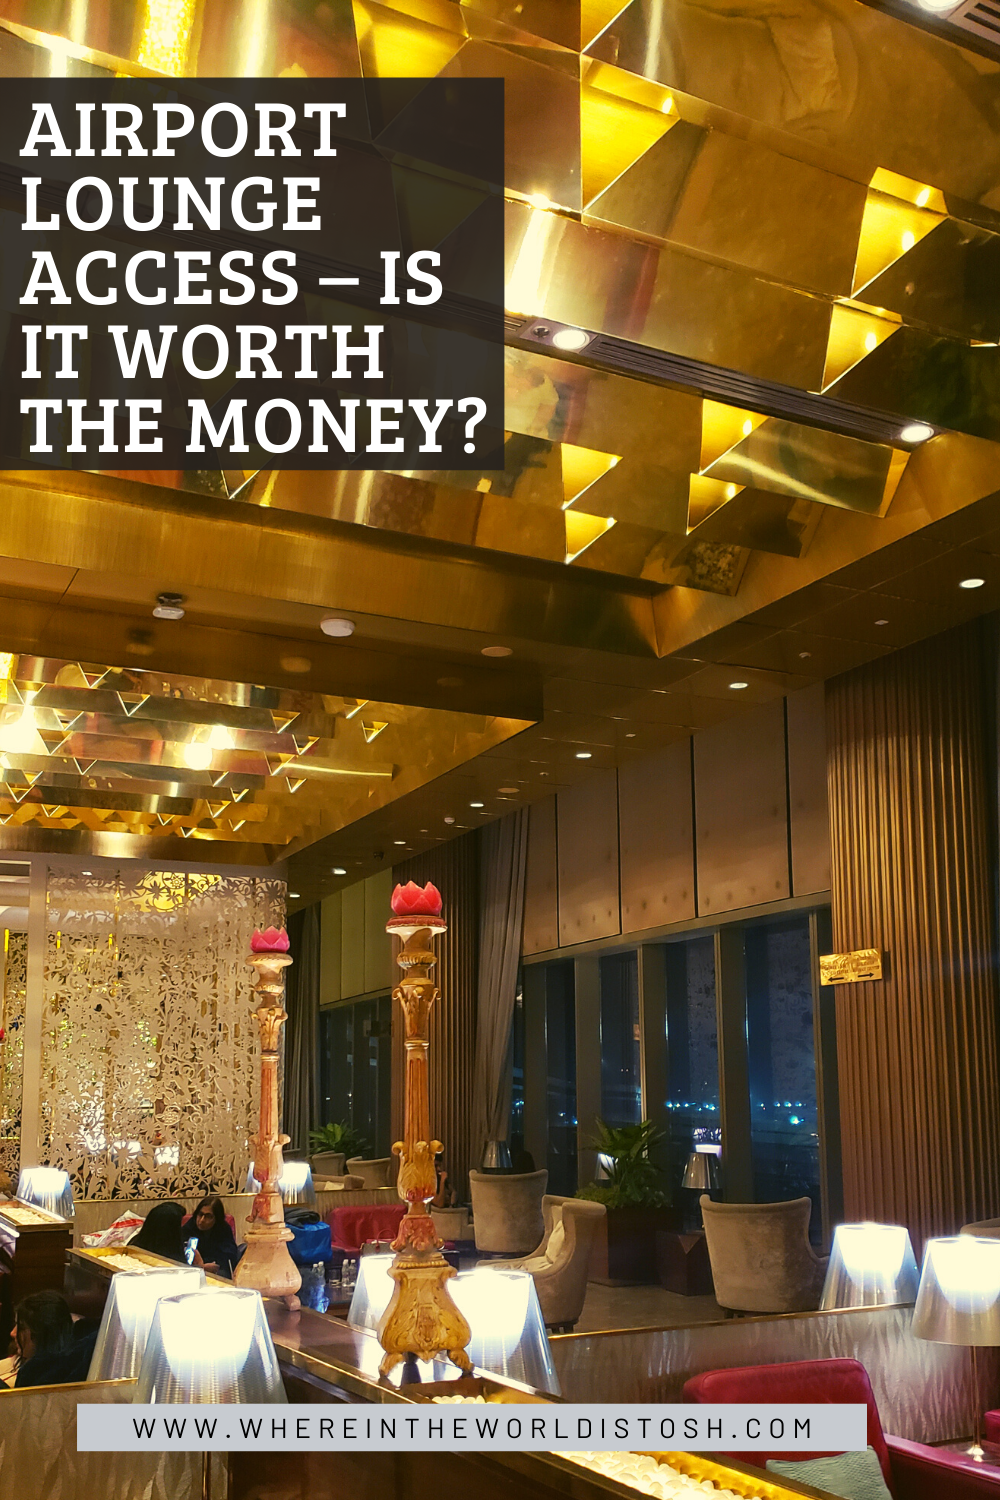 Airport Lounge Access Is It Worth The Money